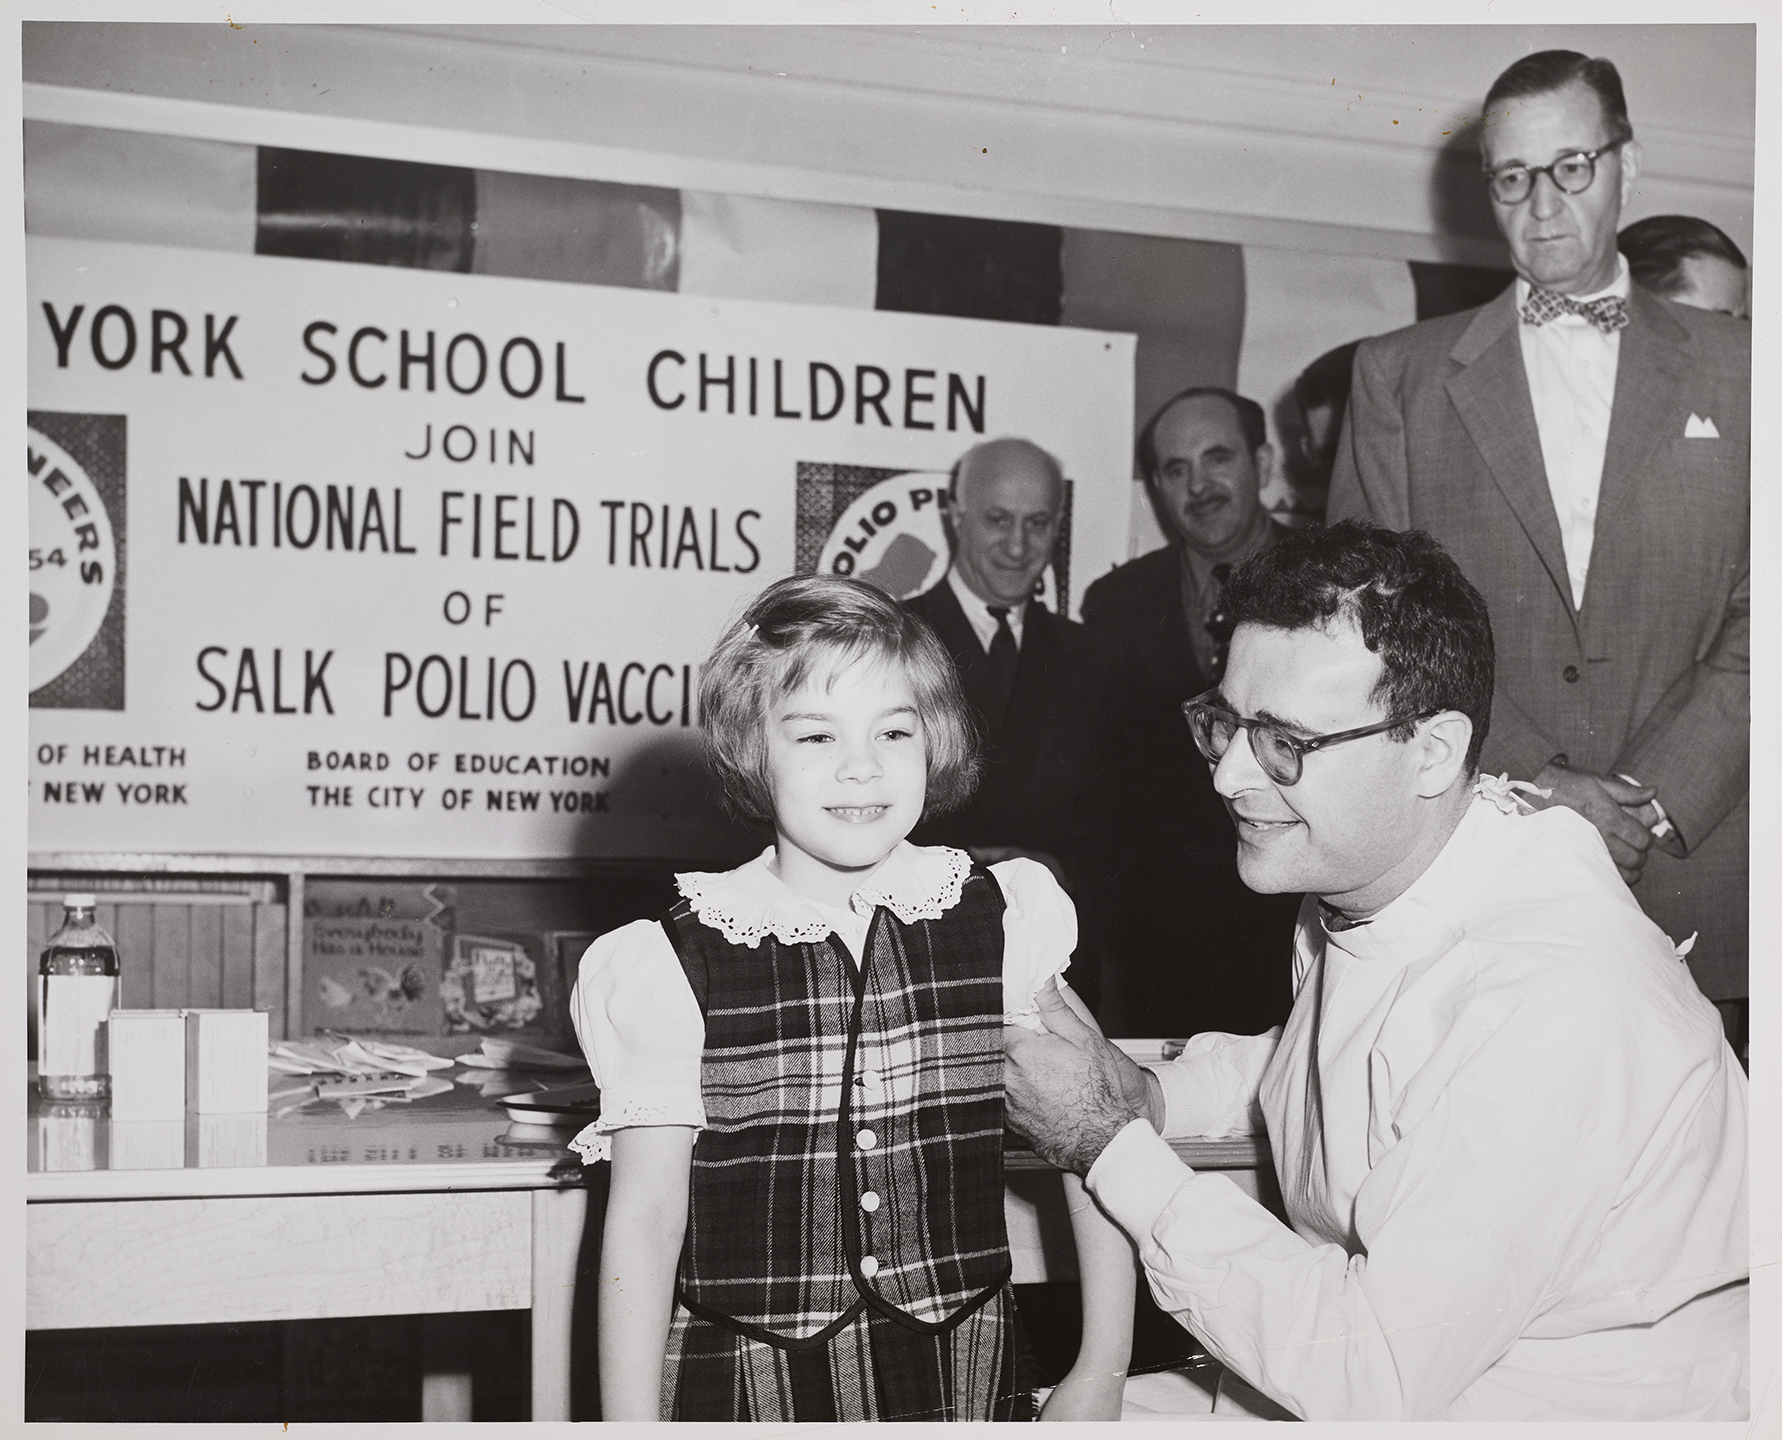 Girl gets injection as part of National Foundation for Infantile Paralysis vaccine testing, undated. Department of Health Collection, NYC Municipal Archives.